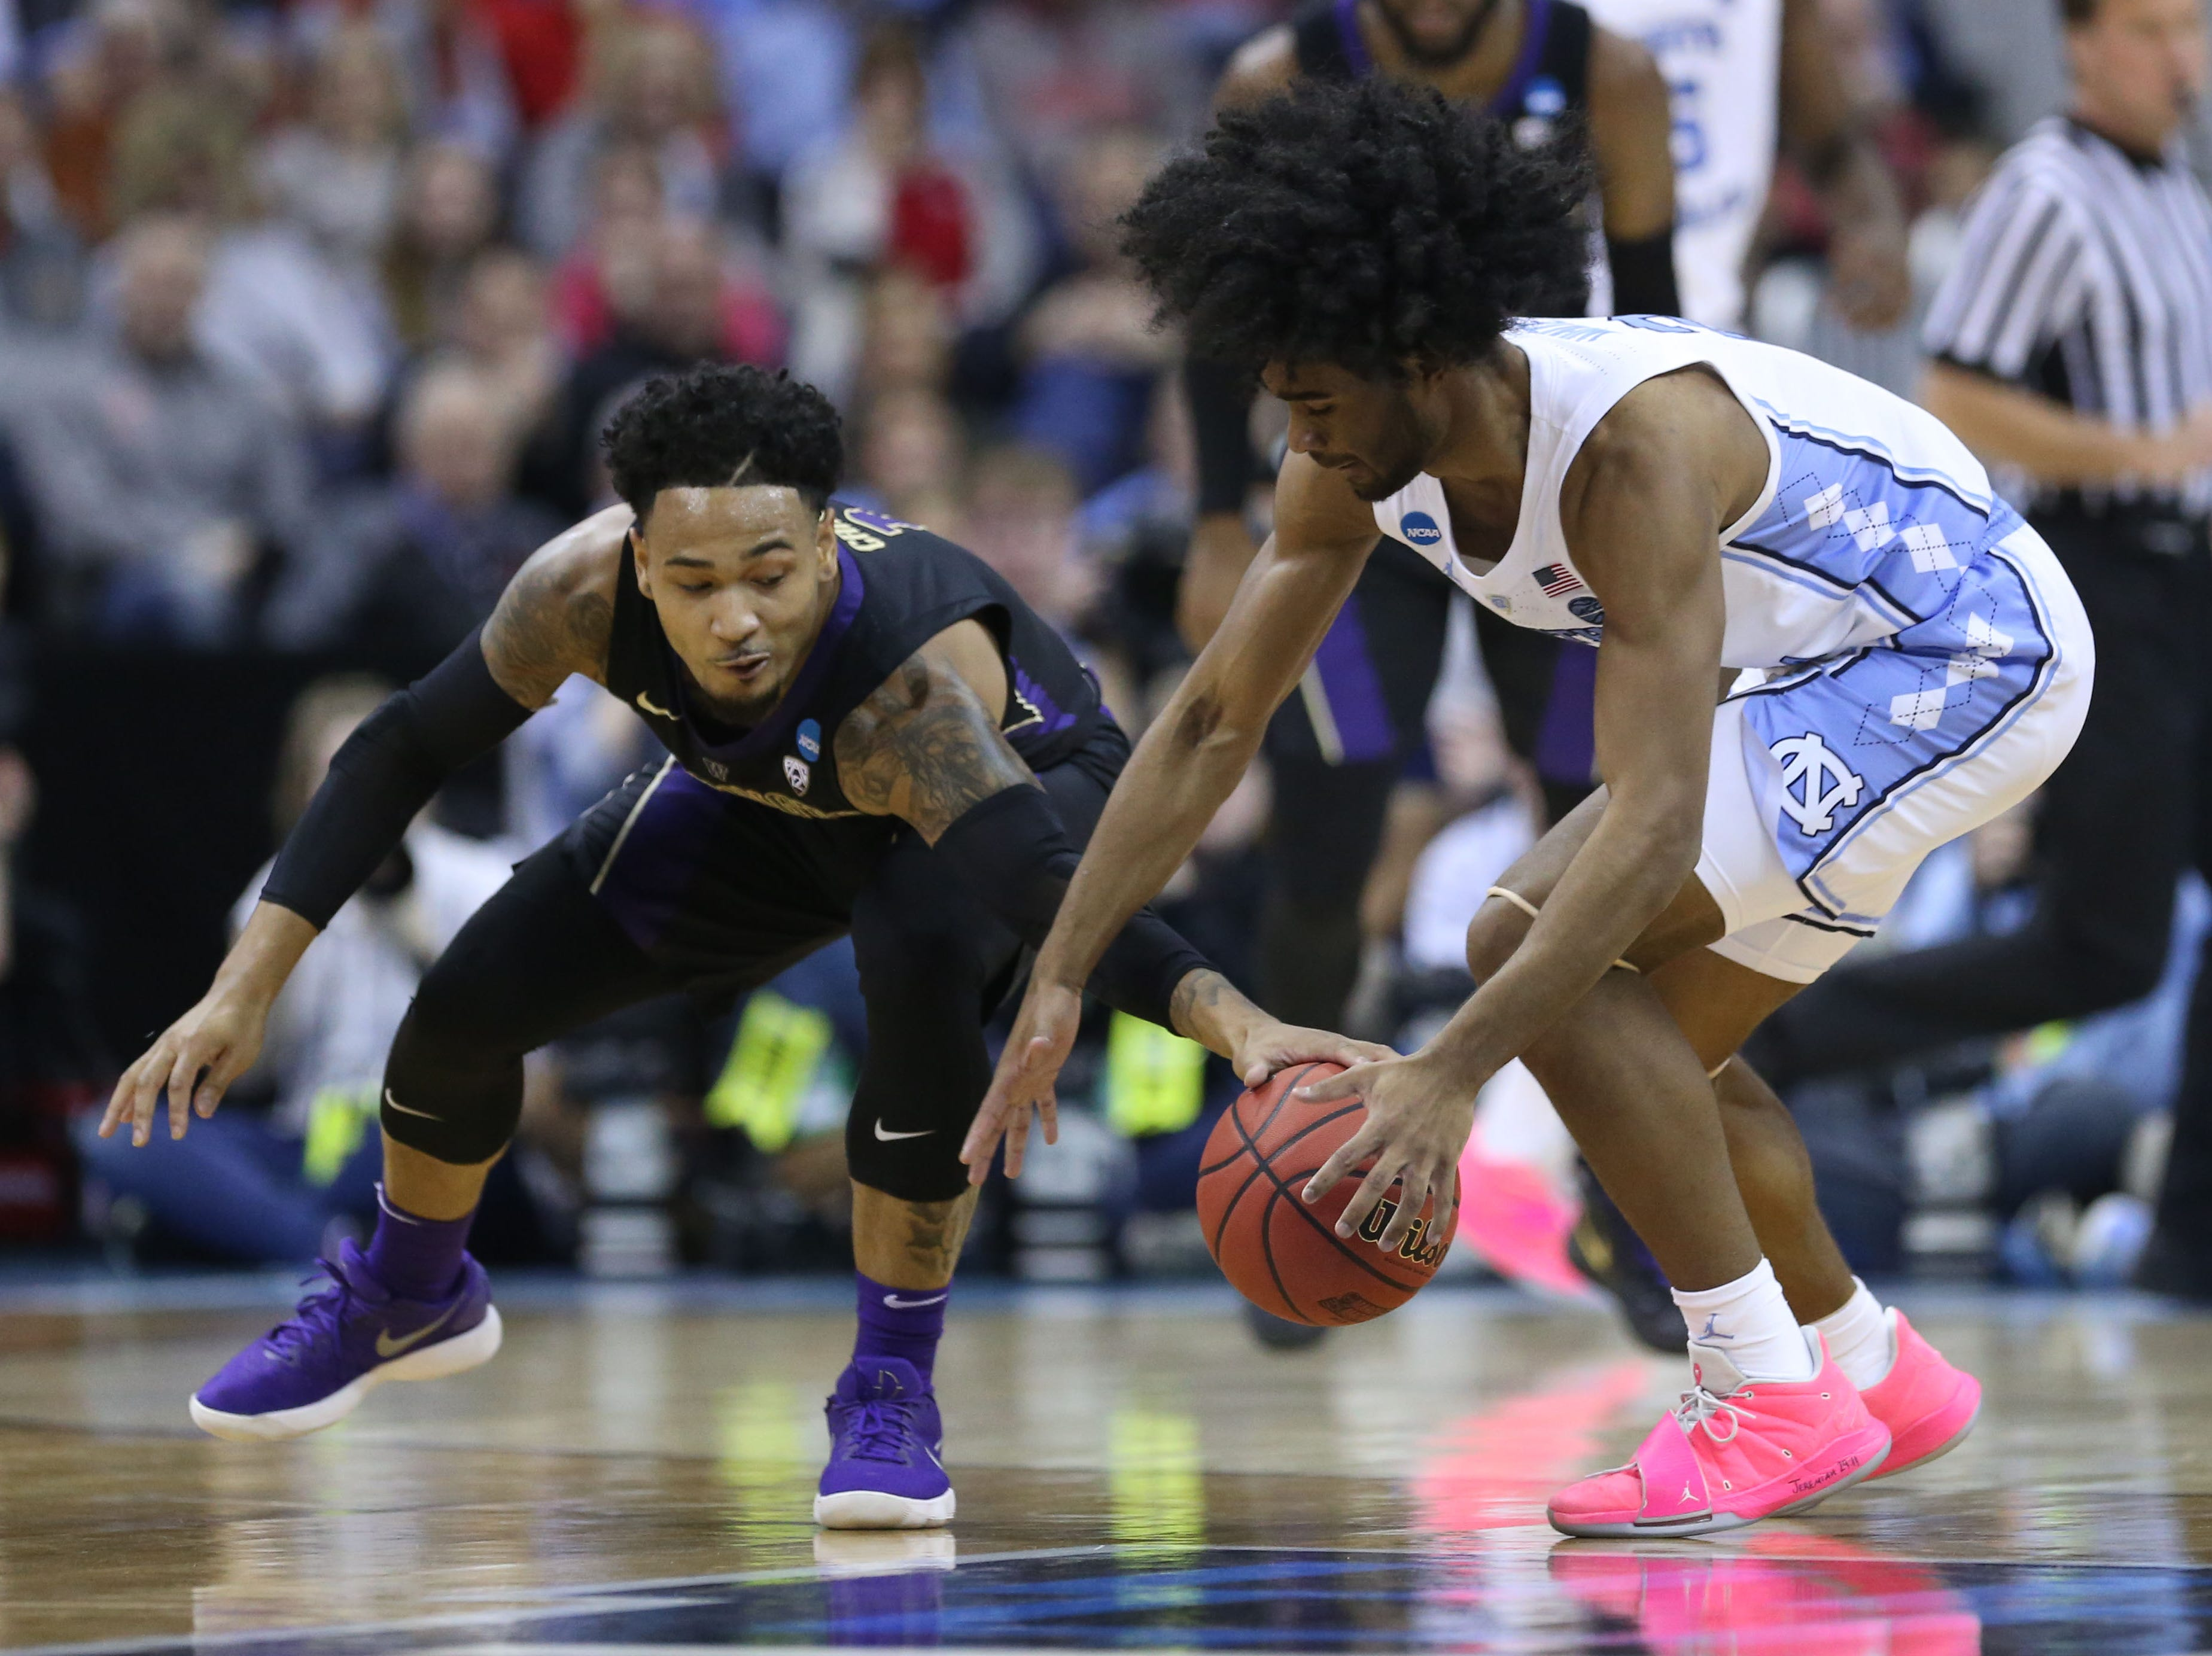 Round of 32: Washington guard David Crisp knocks the ball away from North Carolina guard Coby White.